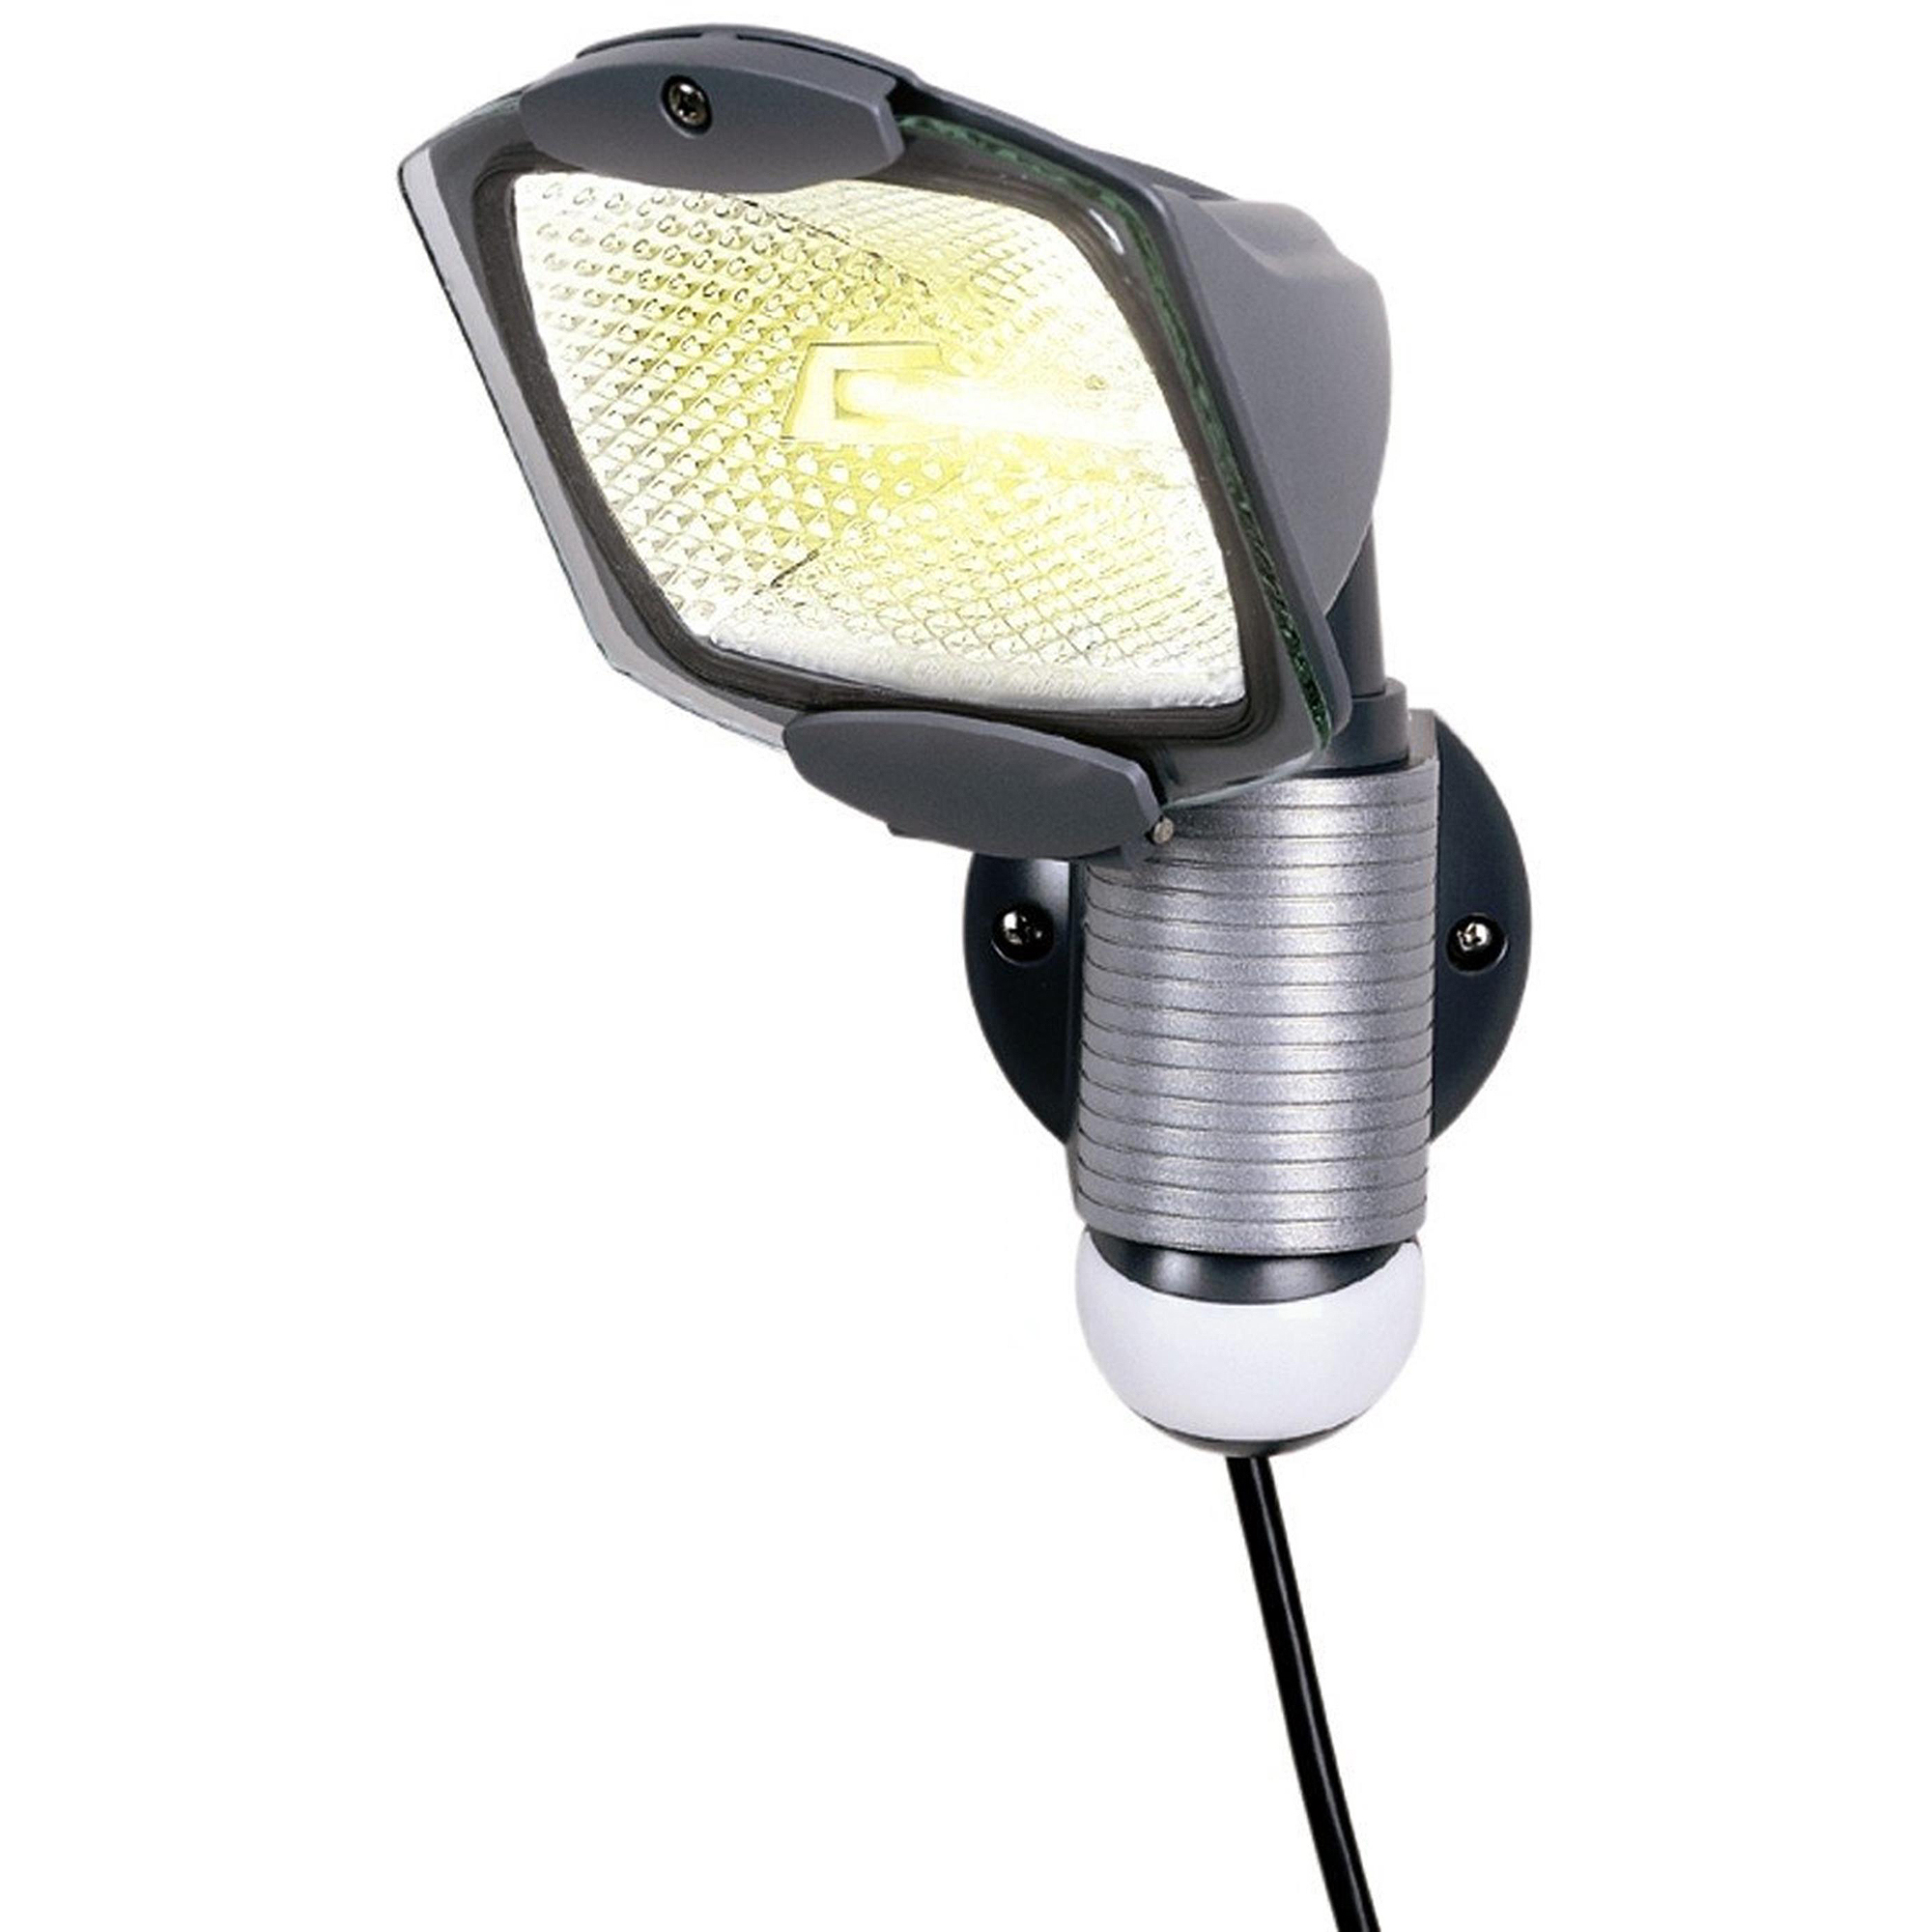 Best Of Flood Light Motion Sensor